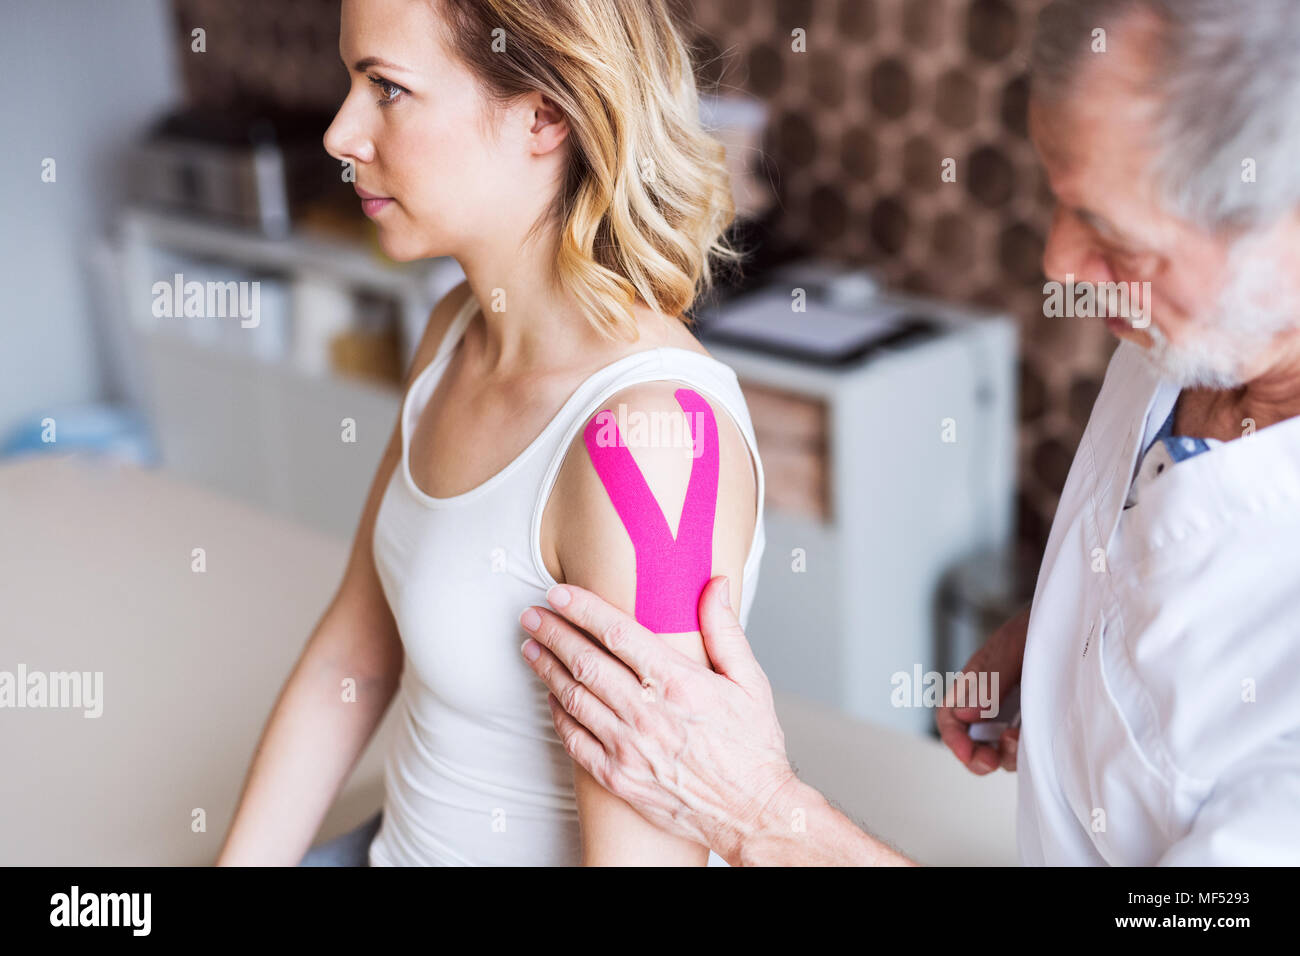 Senior male physiotherapist applying tape on a female patient. - Stock Image